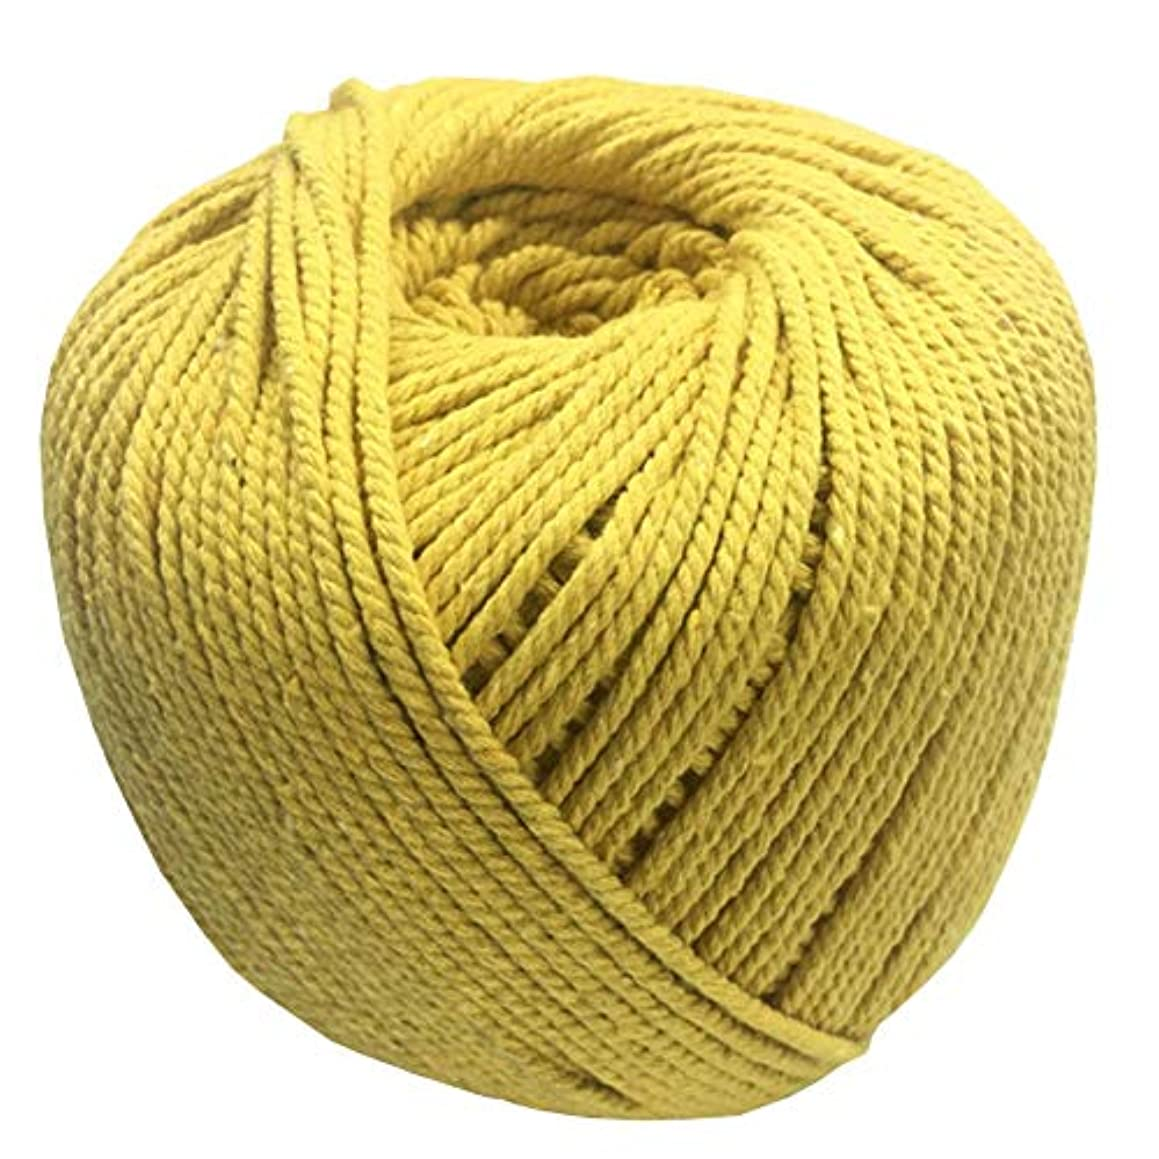 Natural Cotton Cord Rope DIY Macrame Cord Colored Cotton Rope Wall Hanging Plant Hanger Craft Making Knitting Rope Home Decoration 13 Colors 3mm200m/4mm110m (3mm, Yellow)